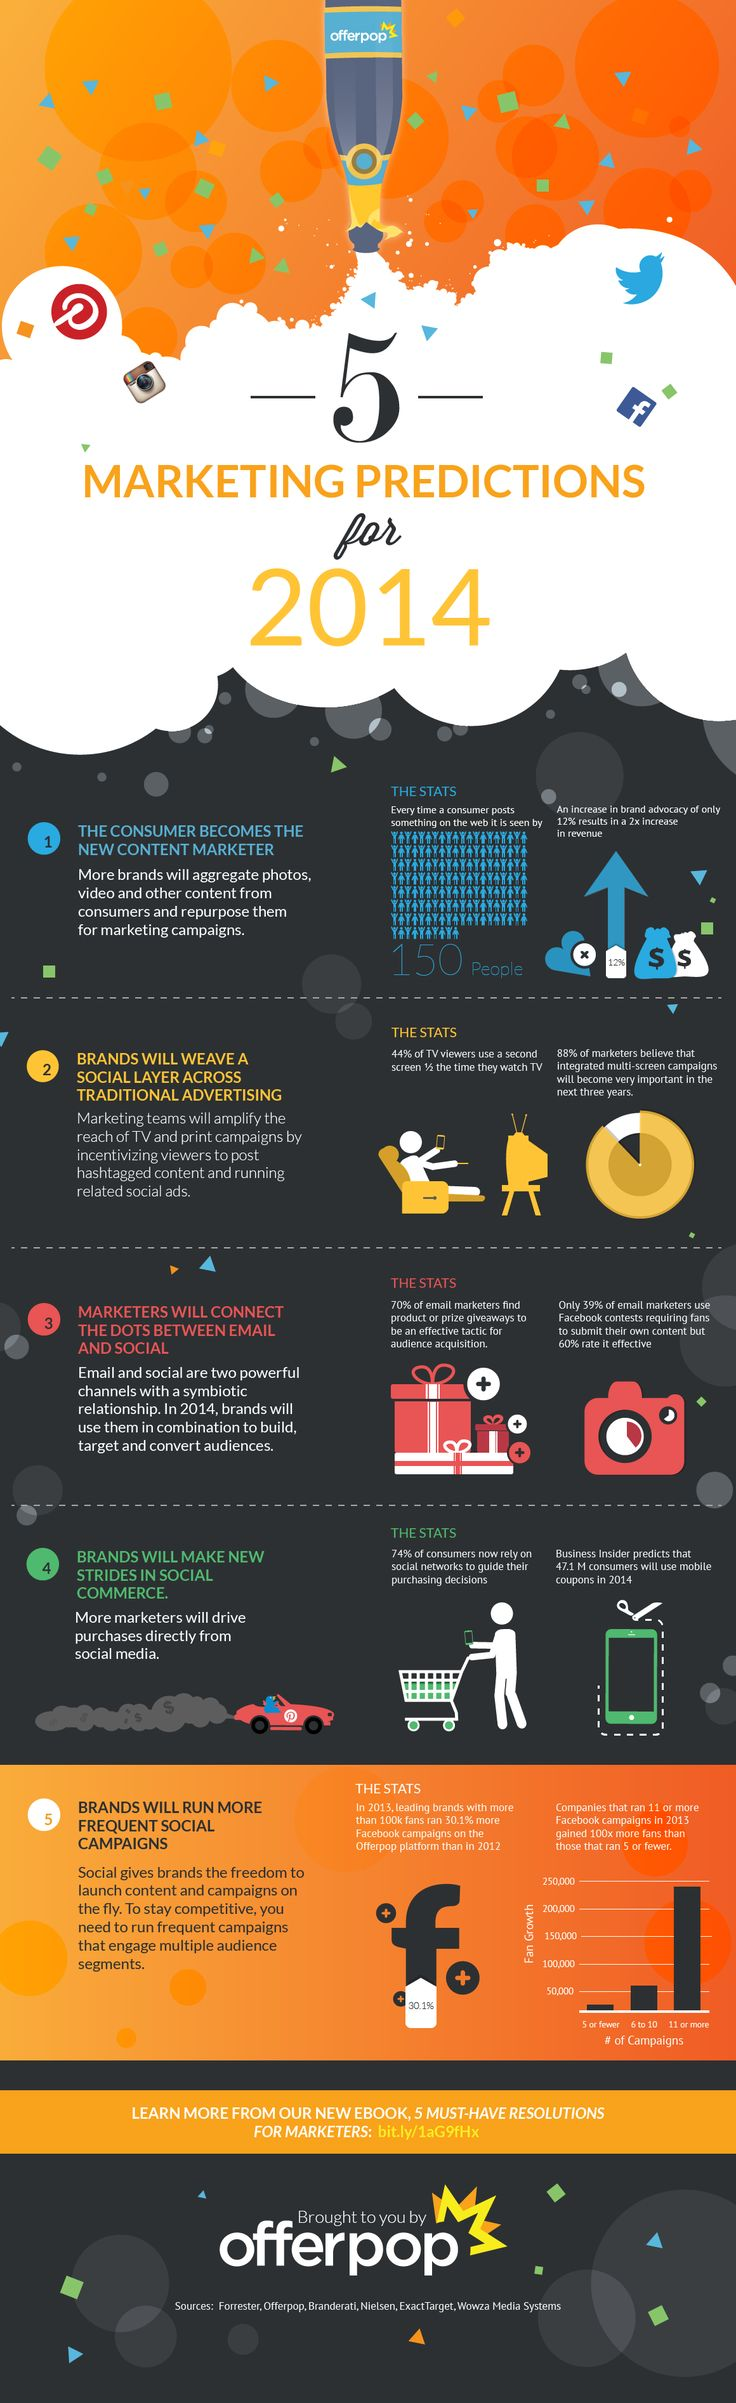 5 Social Media #Marketing Predictions for 2014 #Infographic